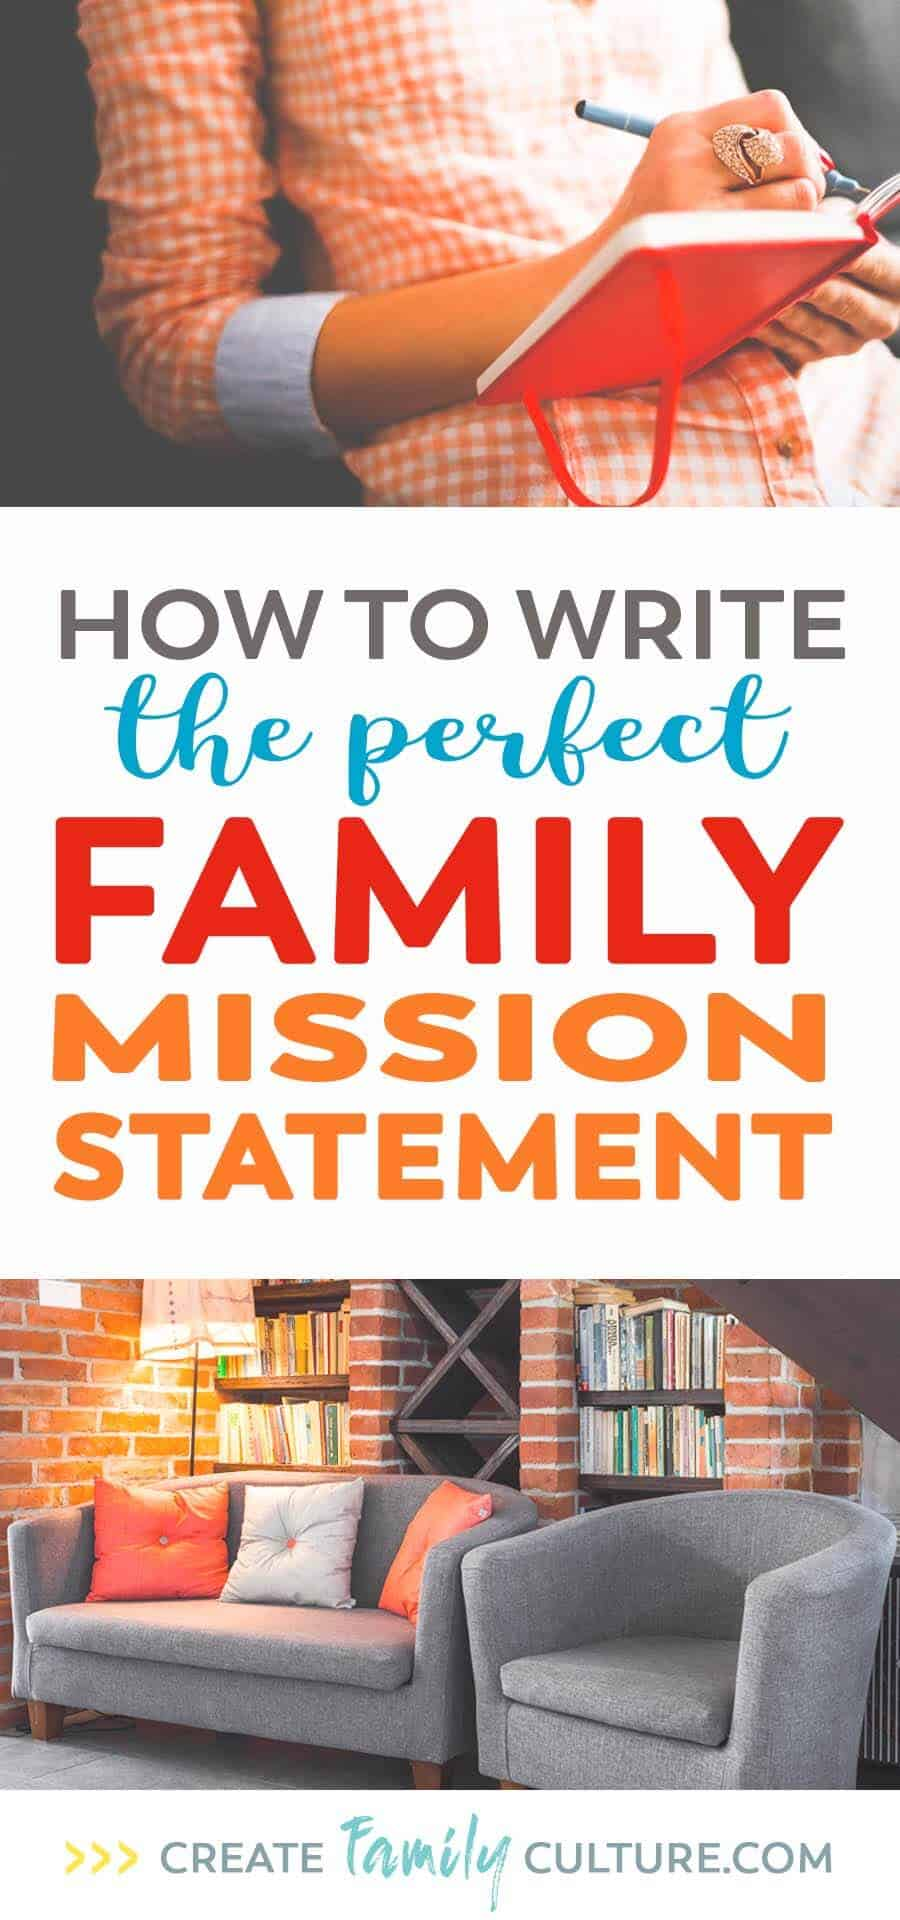 How to Write the Perfect Family Mission Statement. 5 steps to create a family mission statement that's perfect for your family. Parenting Goals and Intentional parenting | Christian parenting | Parenting tips and resources